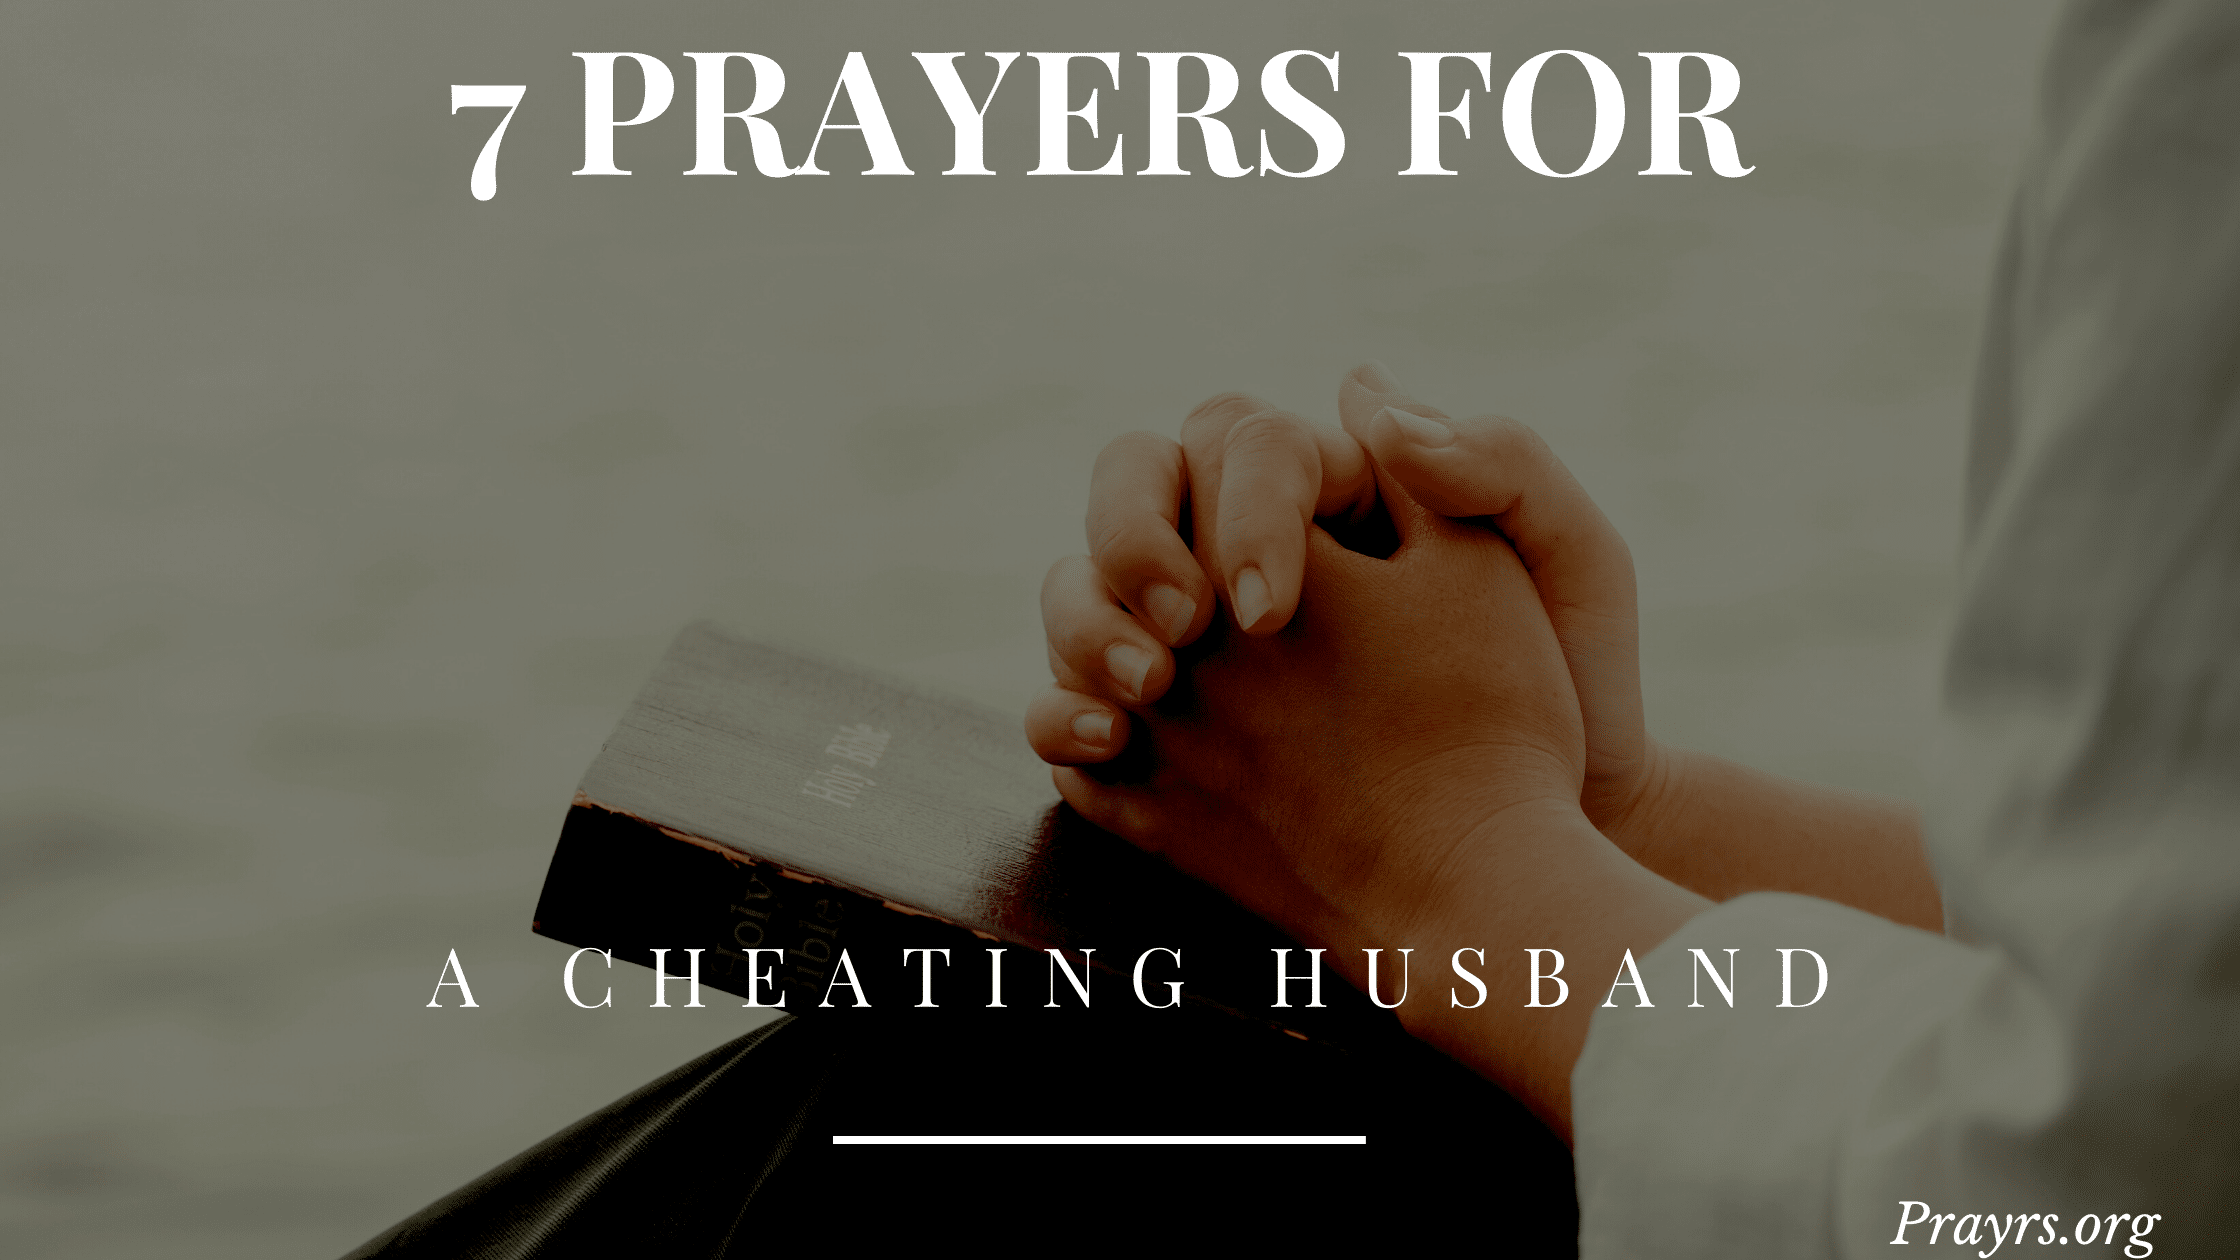 Powerful Prayers For A Cheating Husband